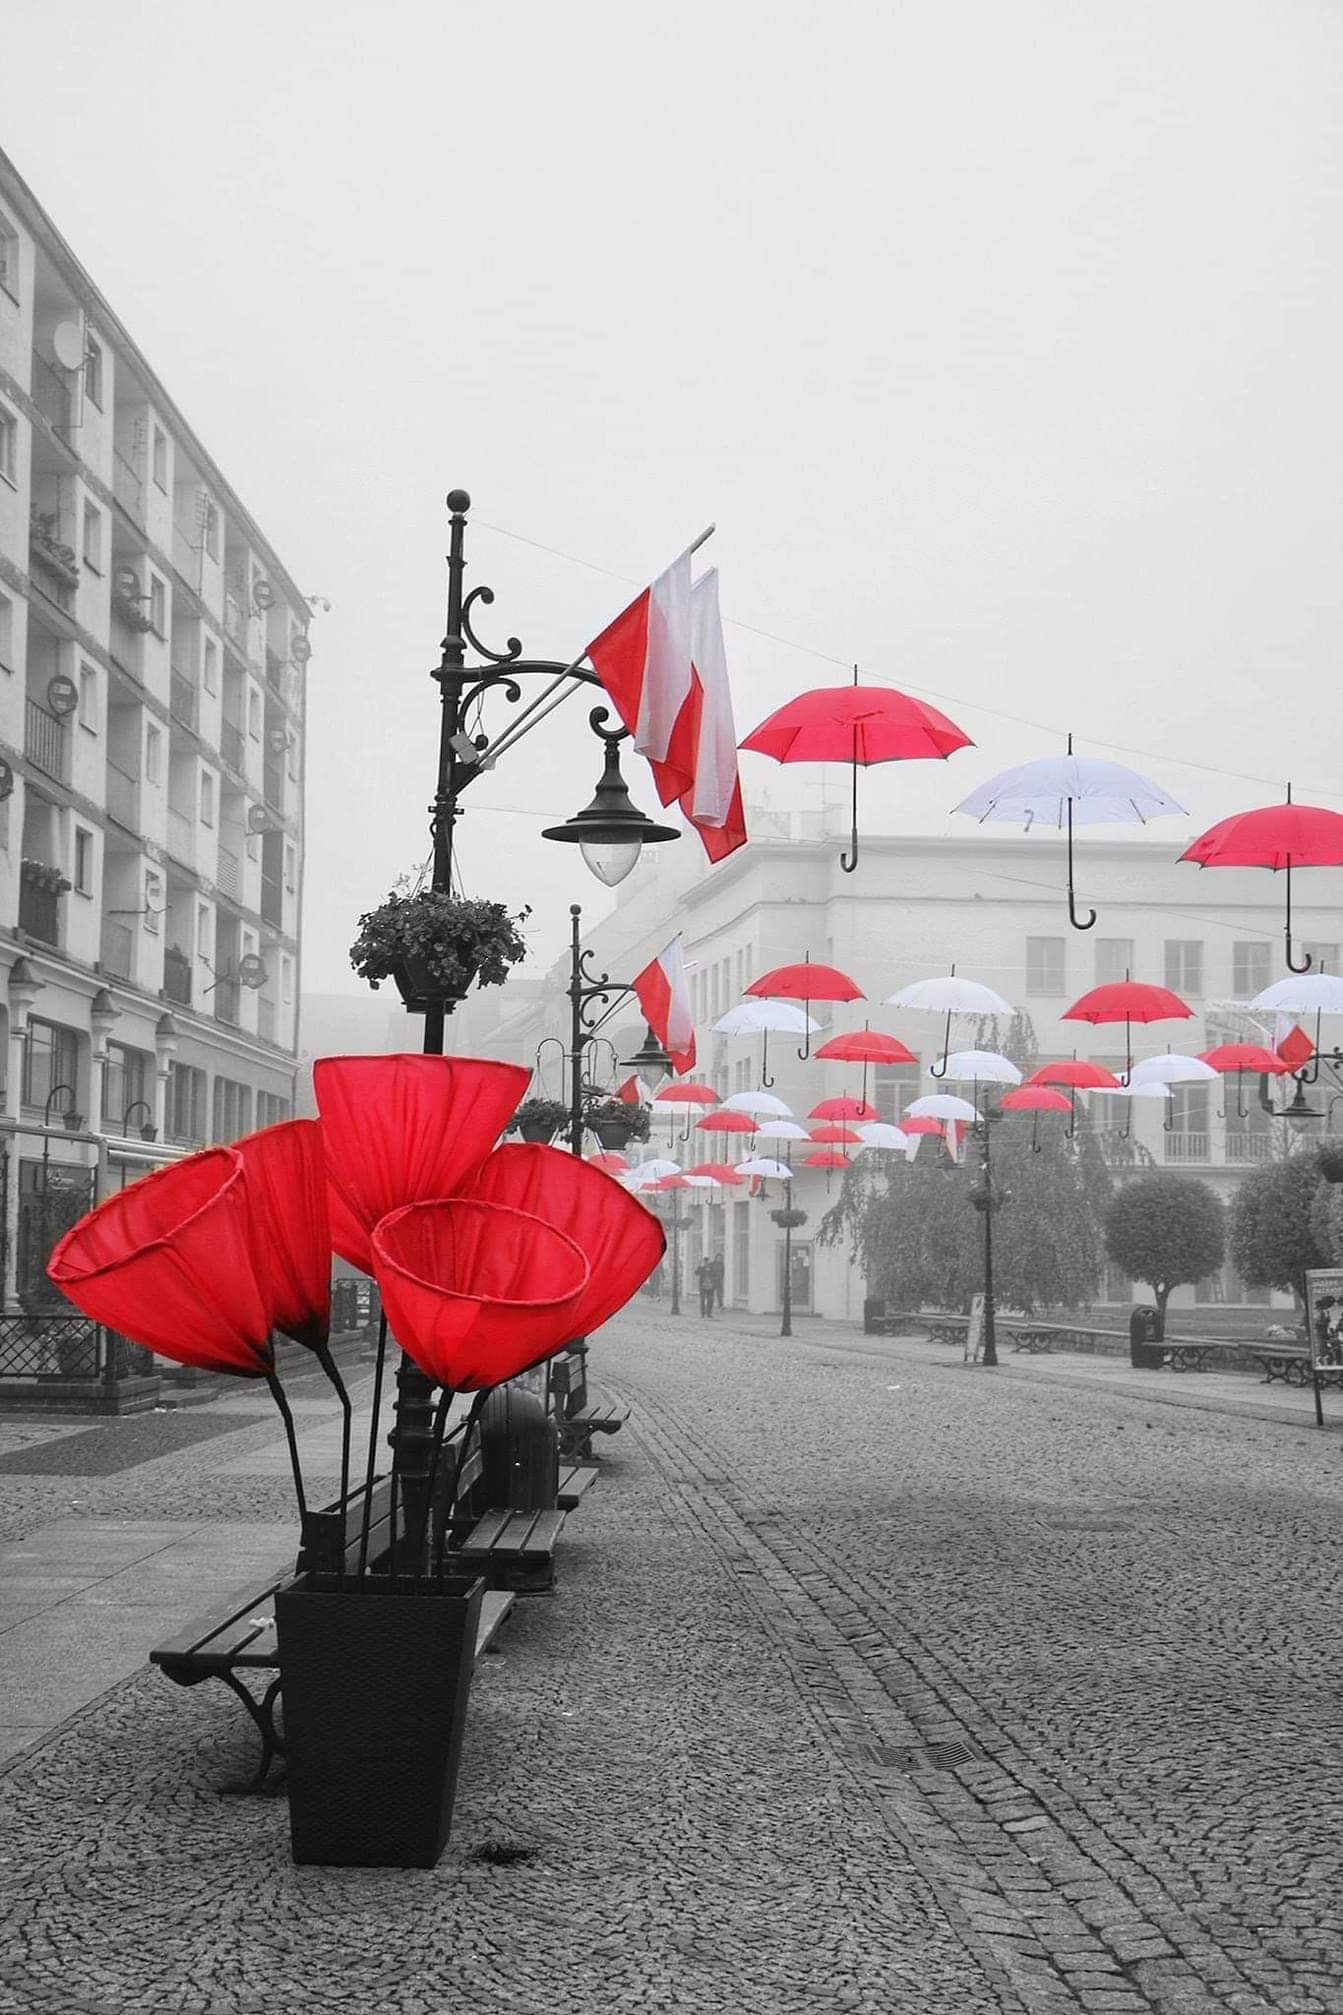 100 reasons why I love Poland